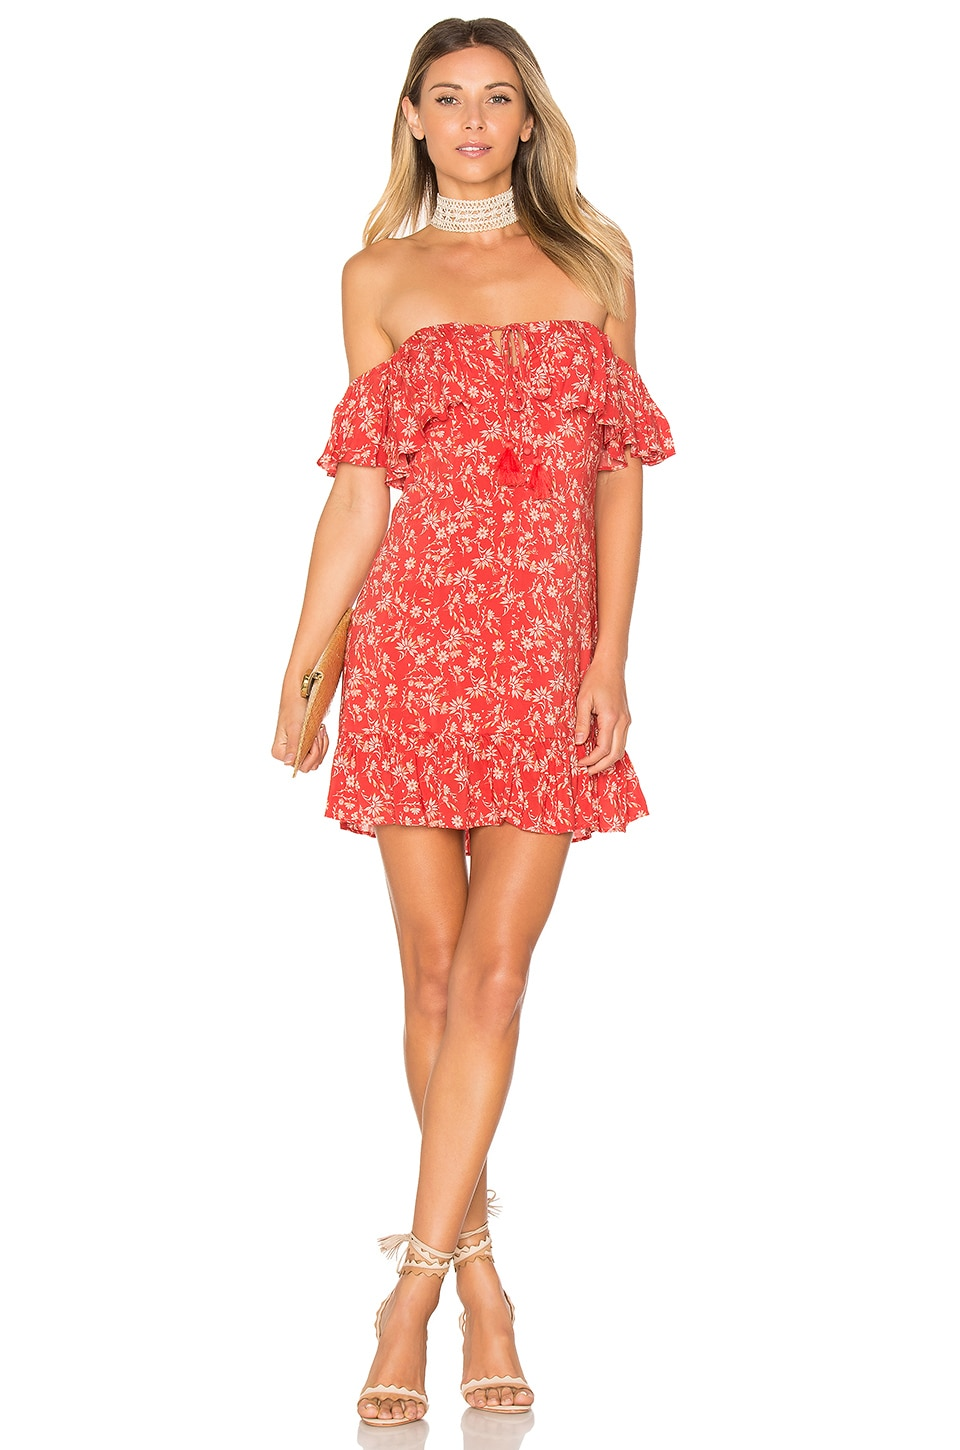 ale by alessandra x REVOLVE Lola Mini Dress in Red Margarita